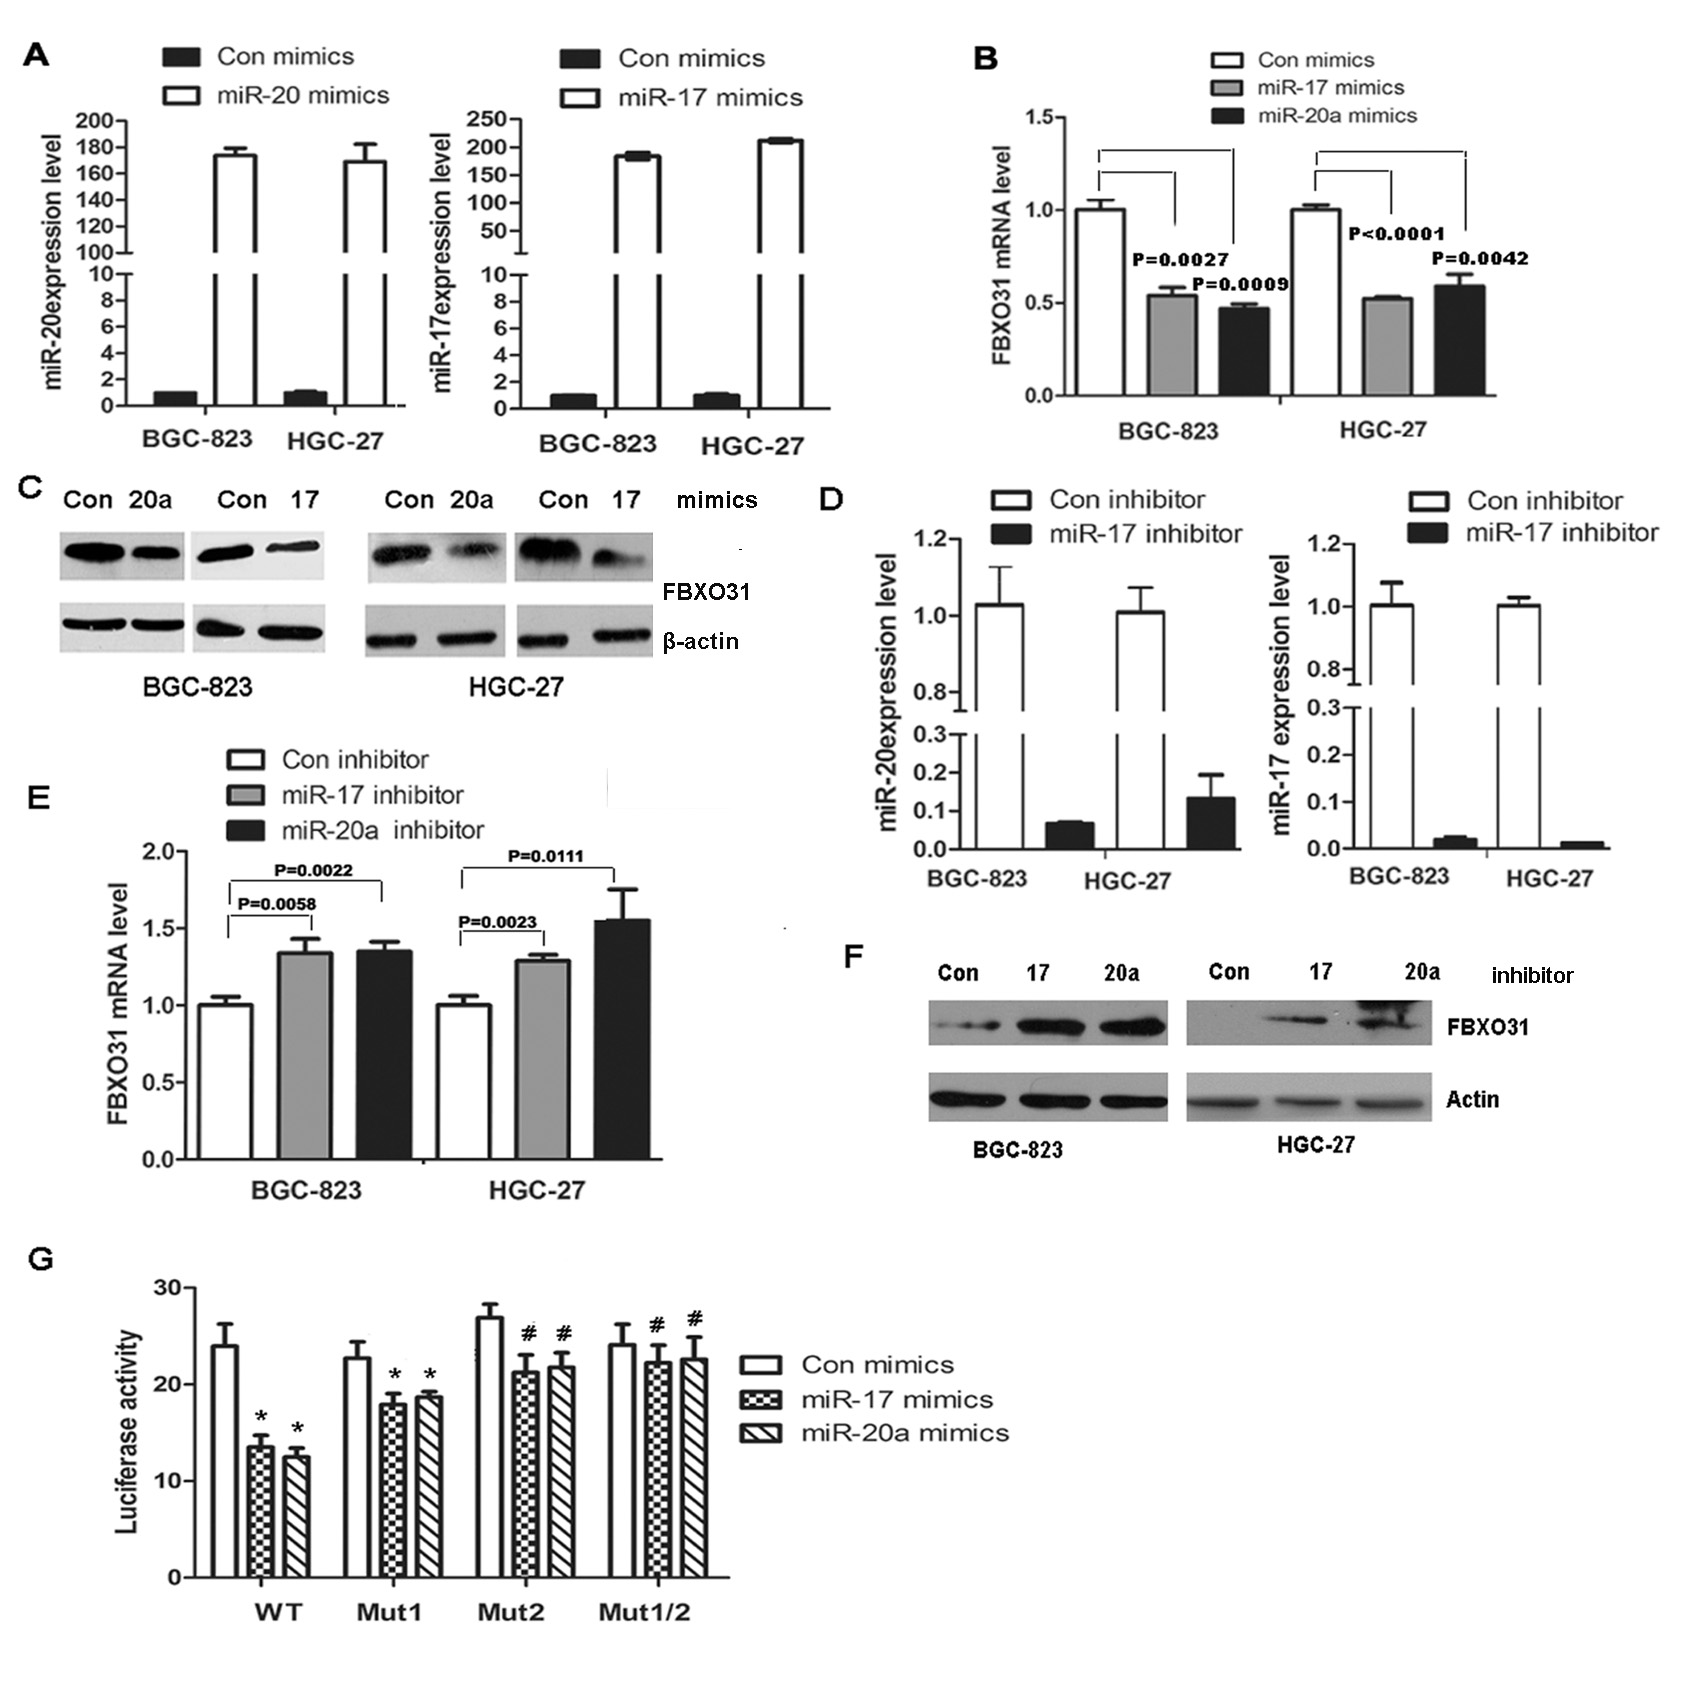 miR-20a and miR-17 directly bind to the 3′ untranslated region (UTR) of FBXO31 and inhibit FBXO31 mRNA and protein expression in human GC cells.